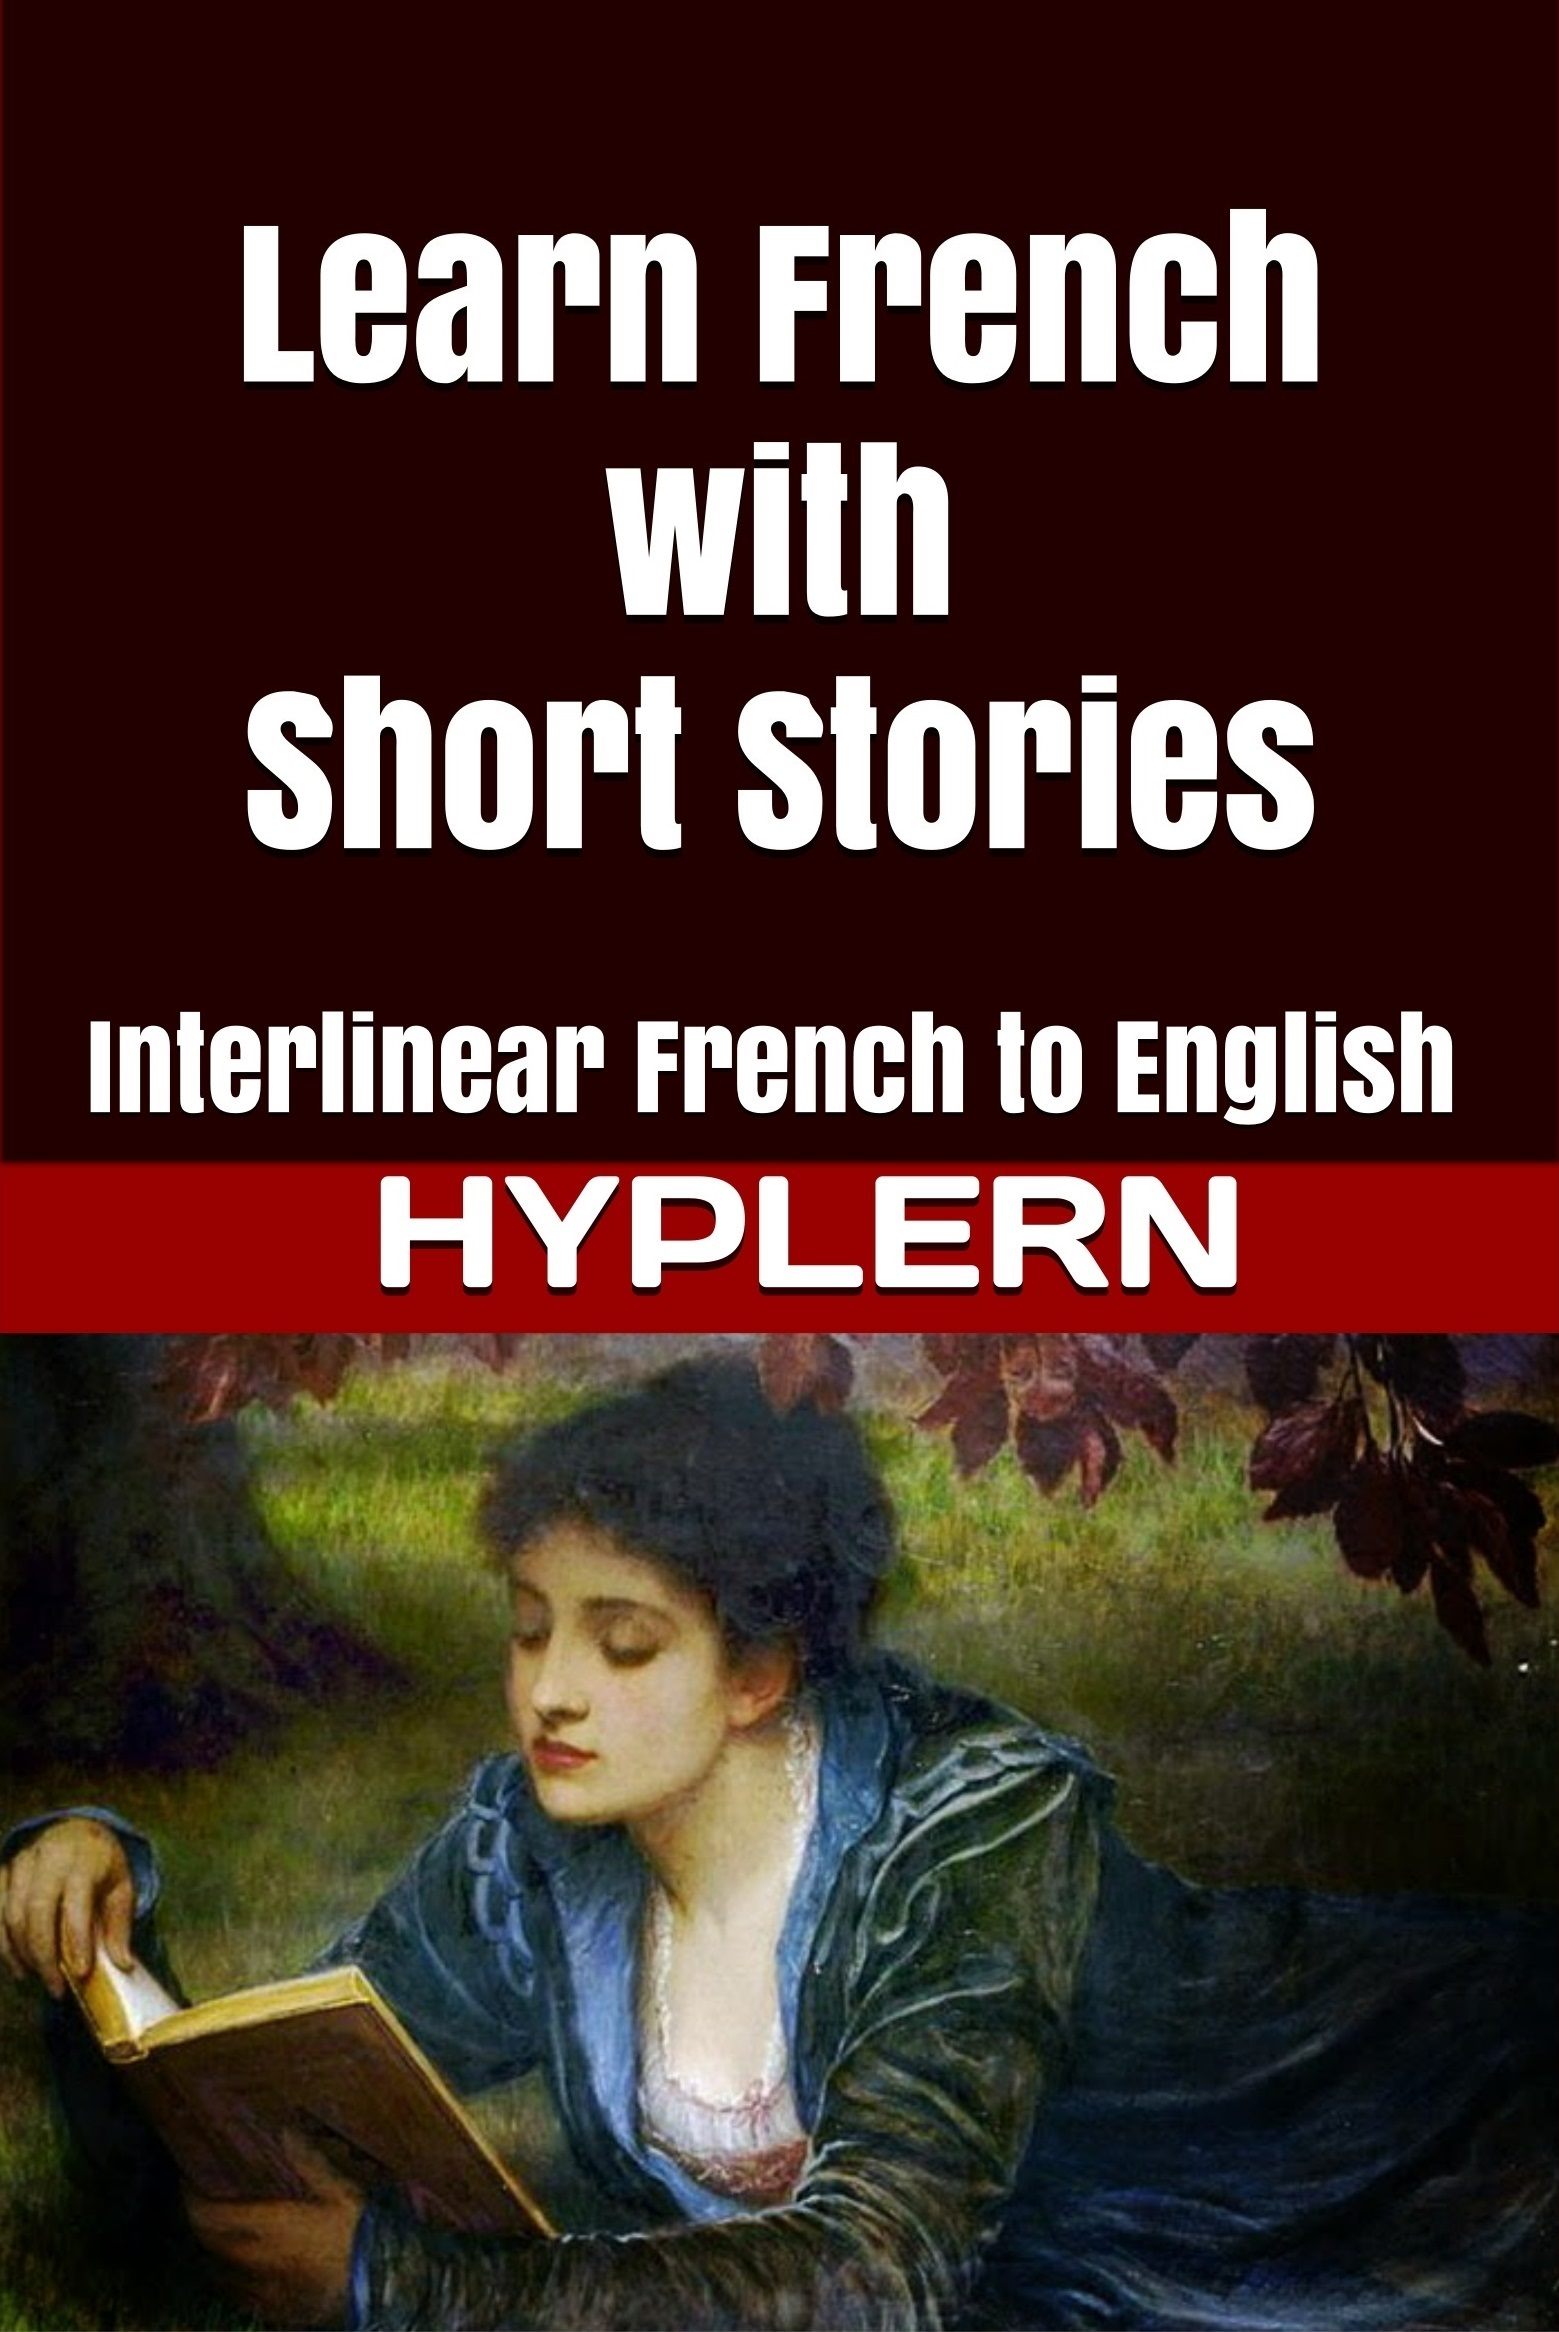 HypLern - Learn French with Short Stories - Interlinear French to English